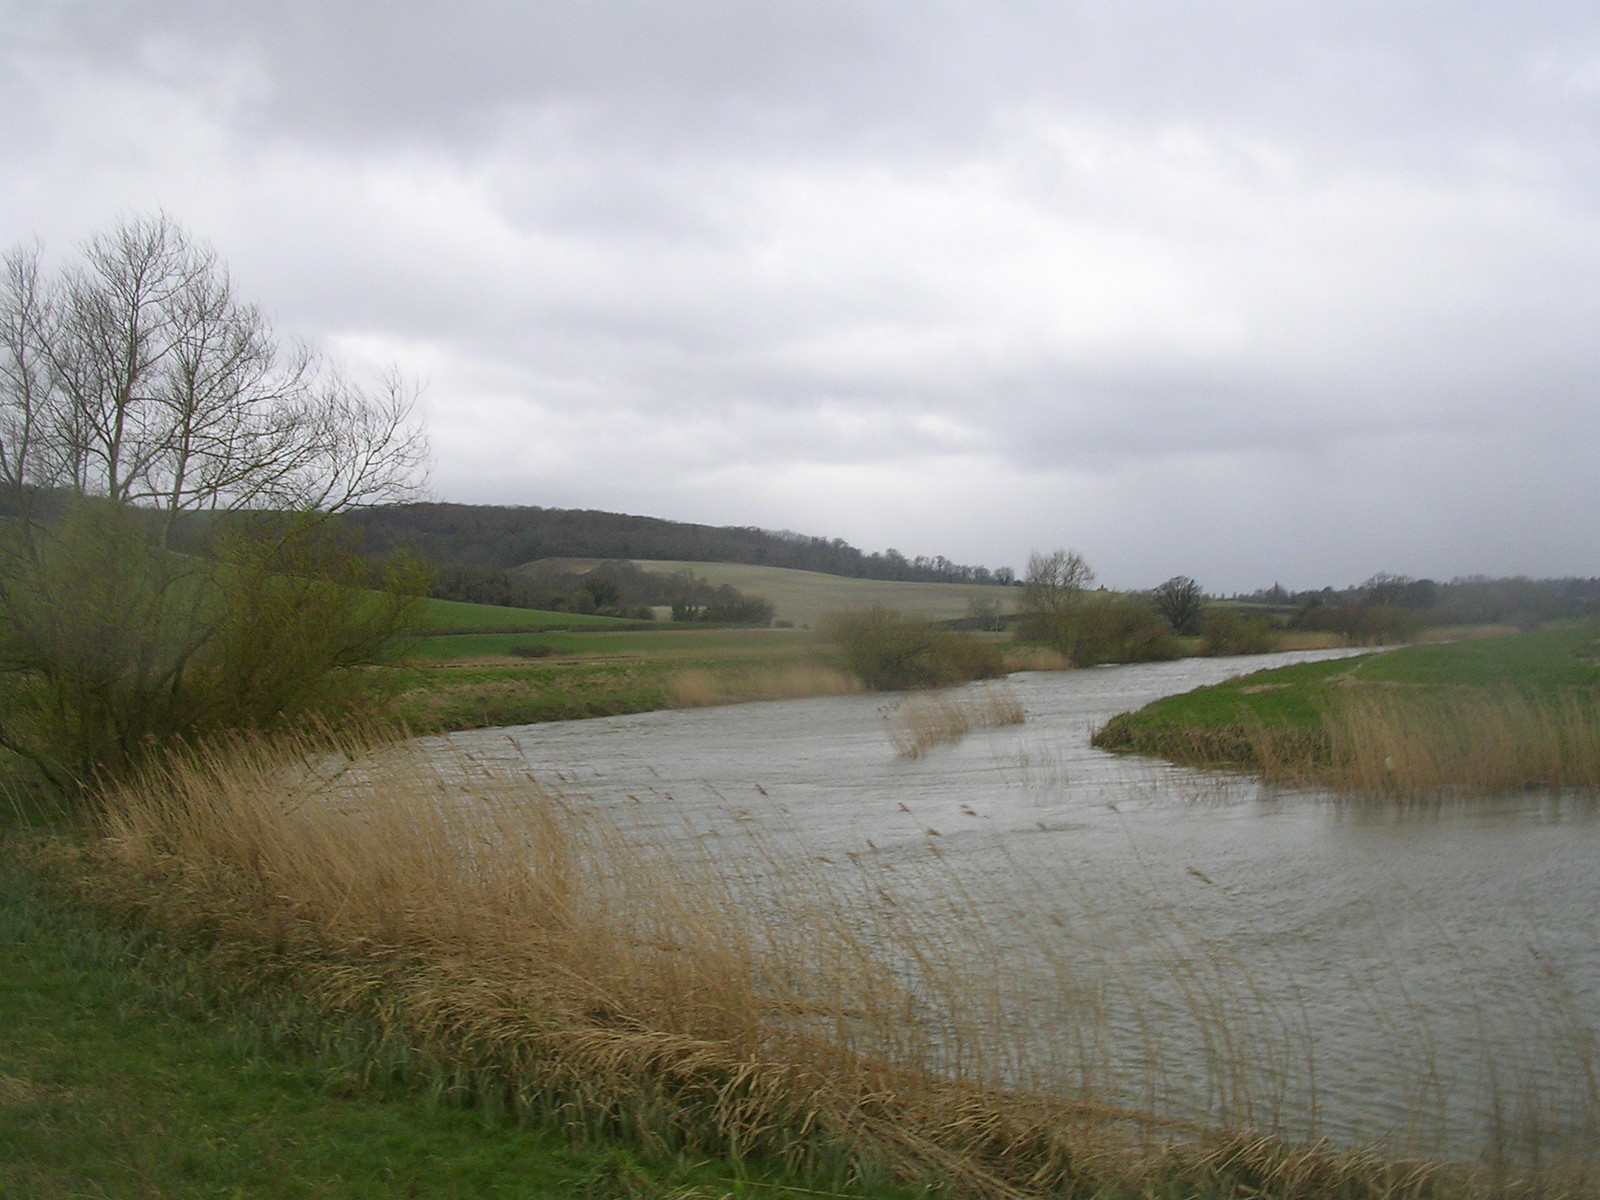 The Arun Amberley to Pulborough